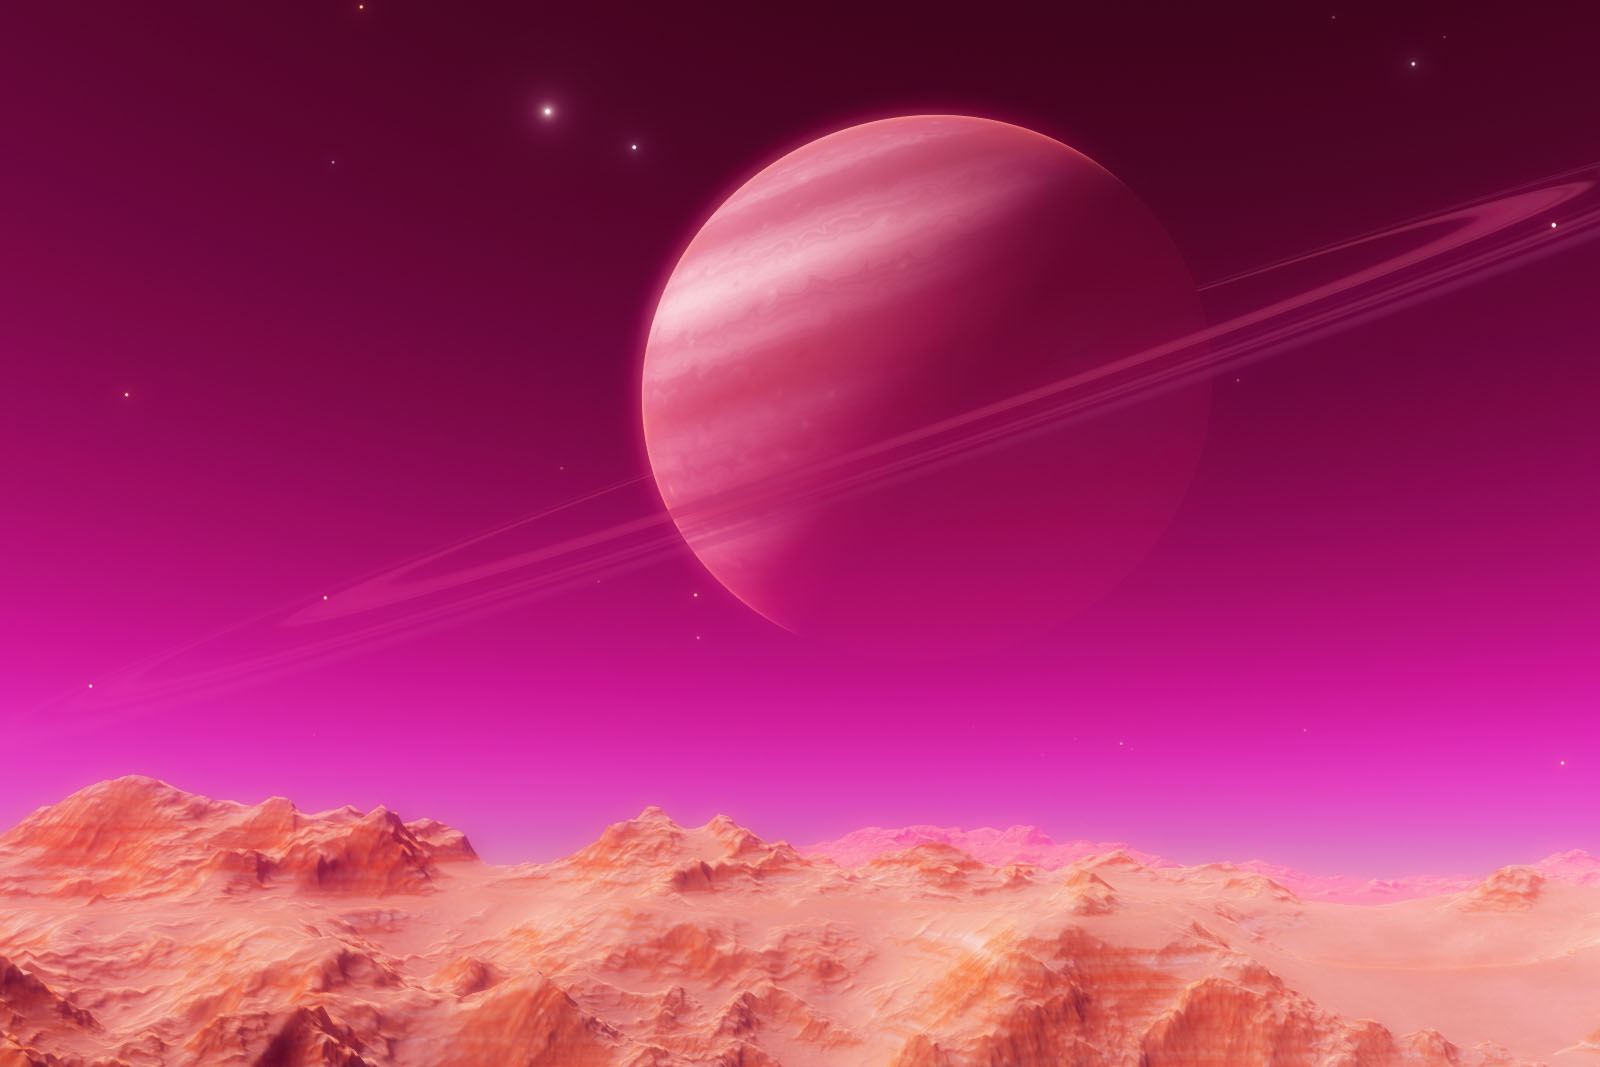 pink planet images - HD 1600×1067